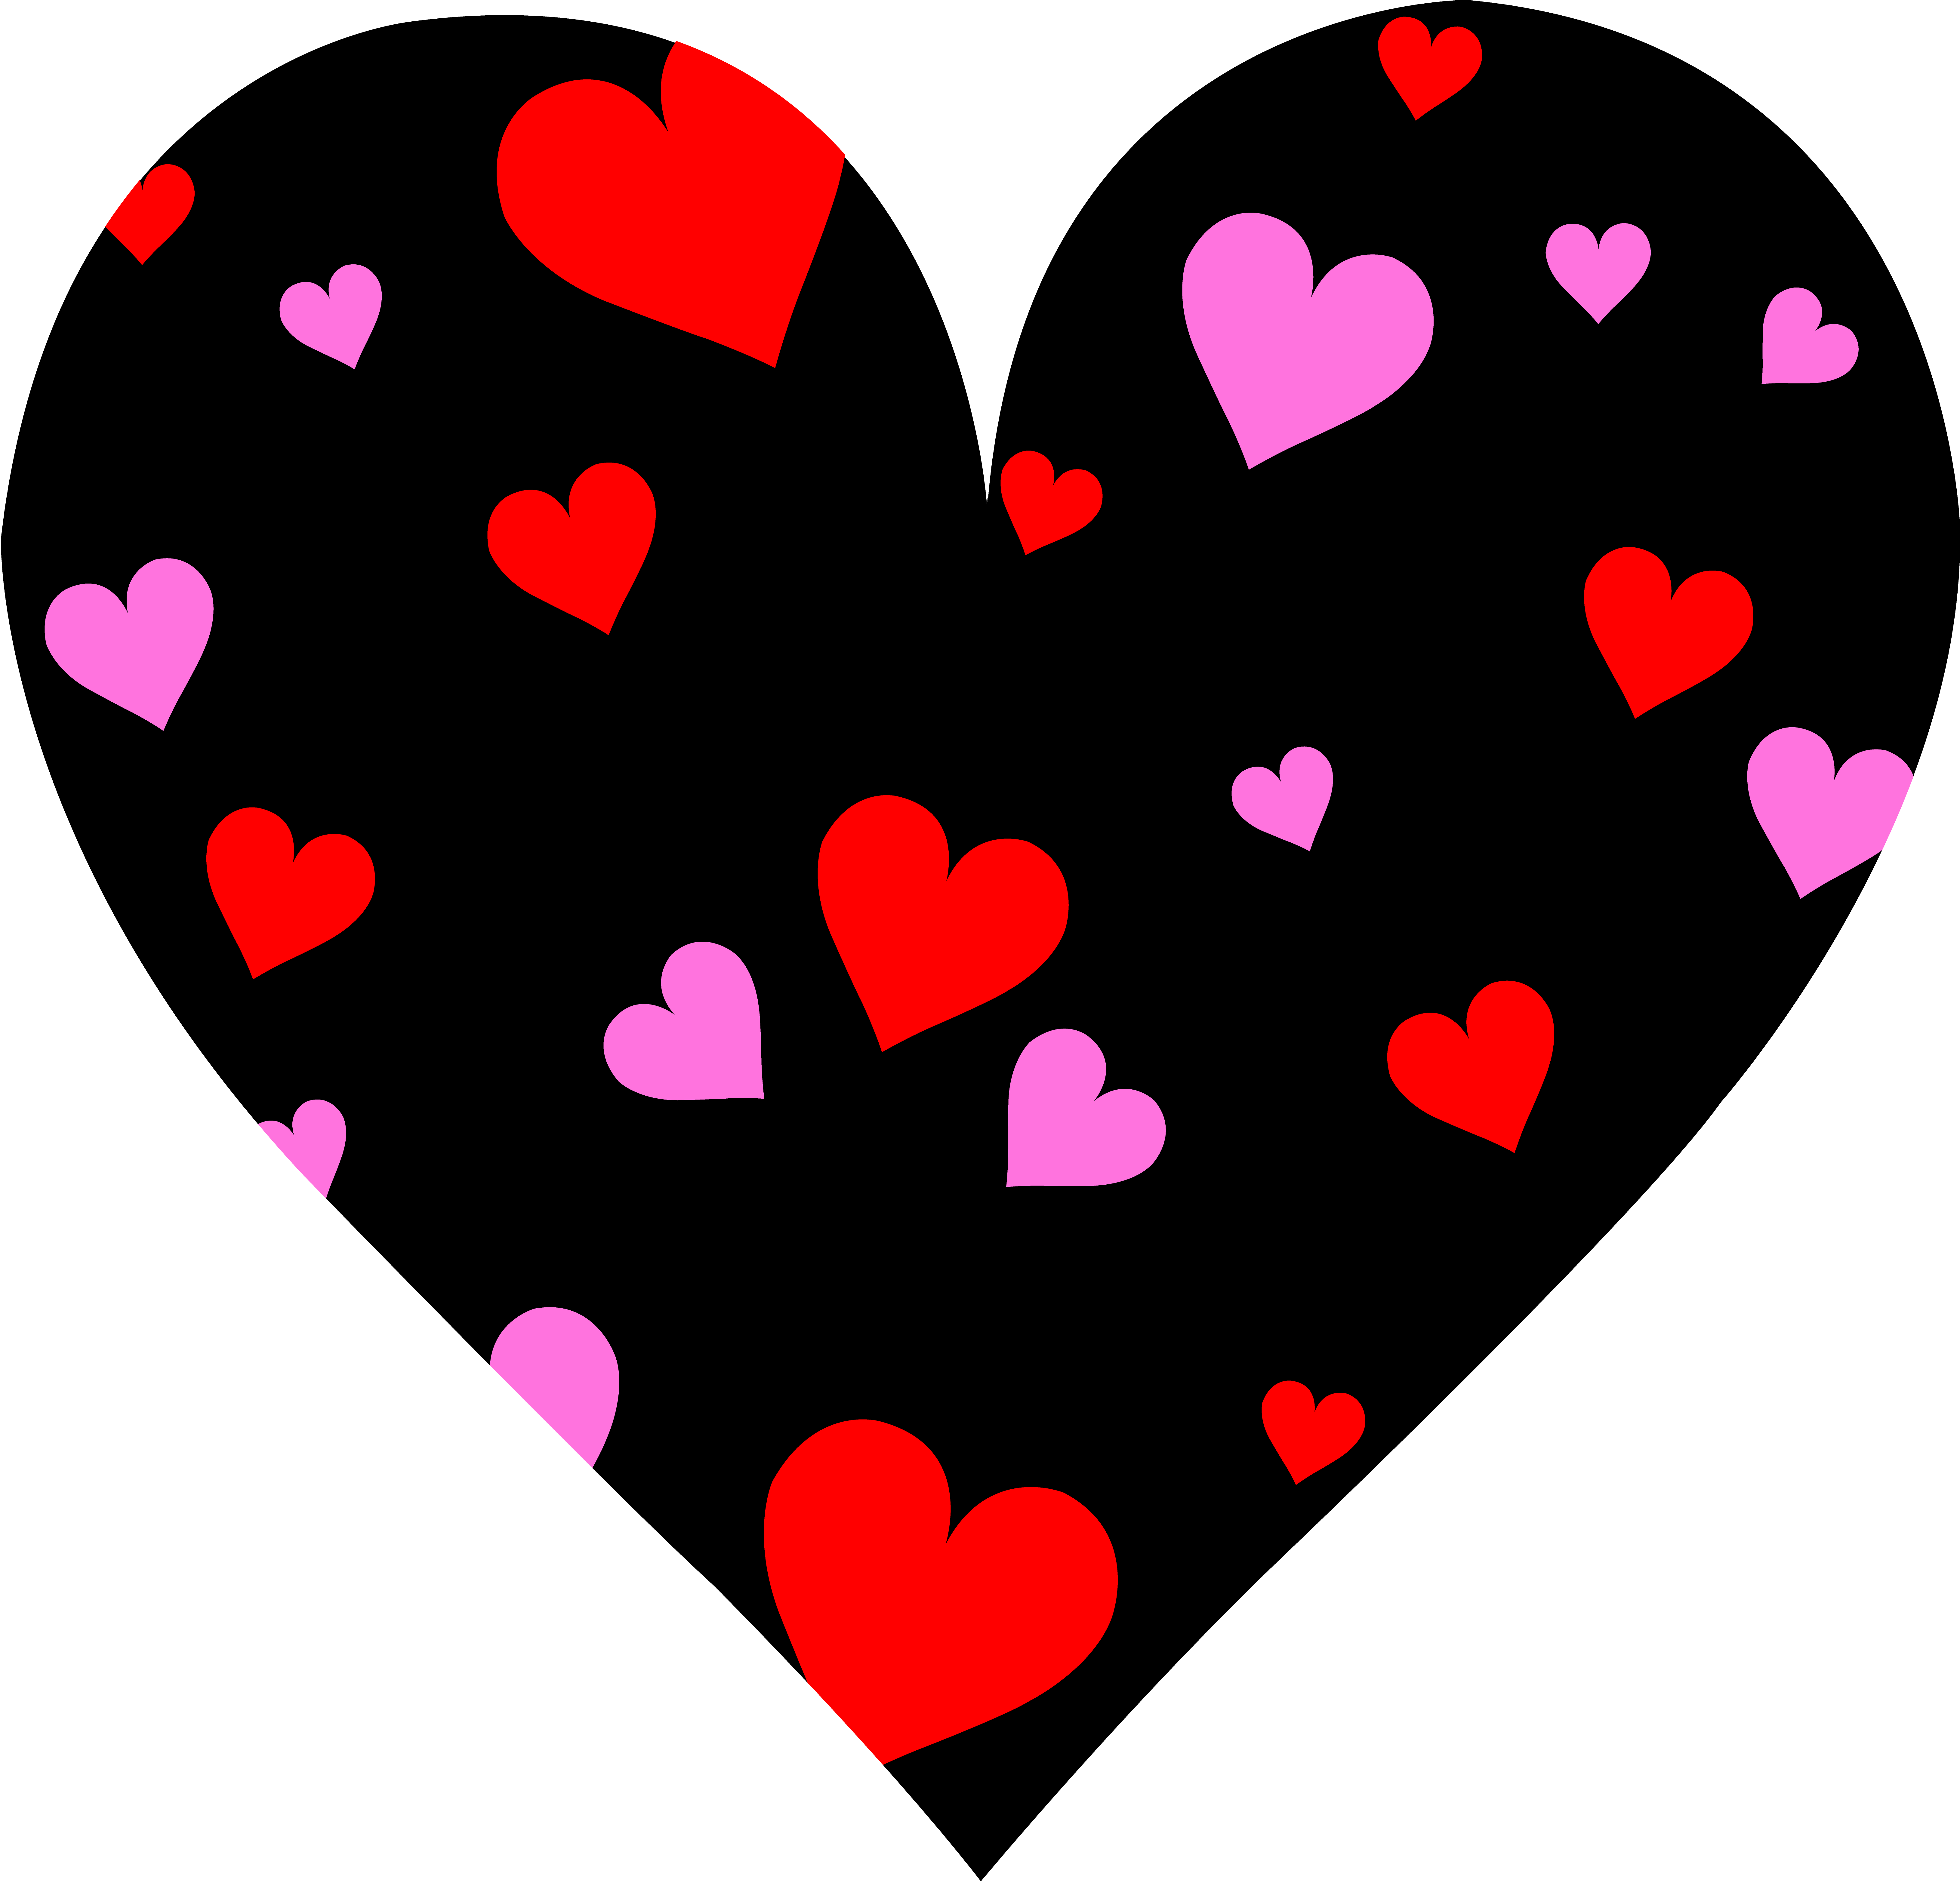 colorful%20hearts%20clipart